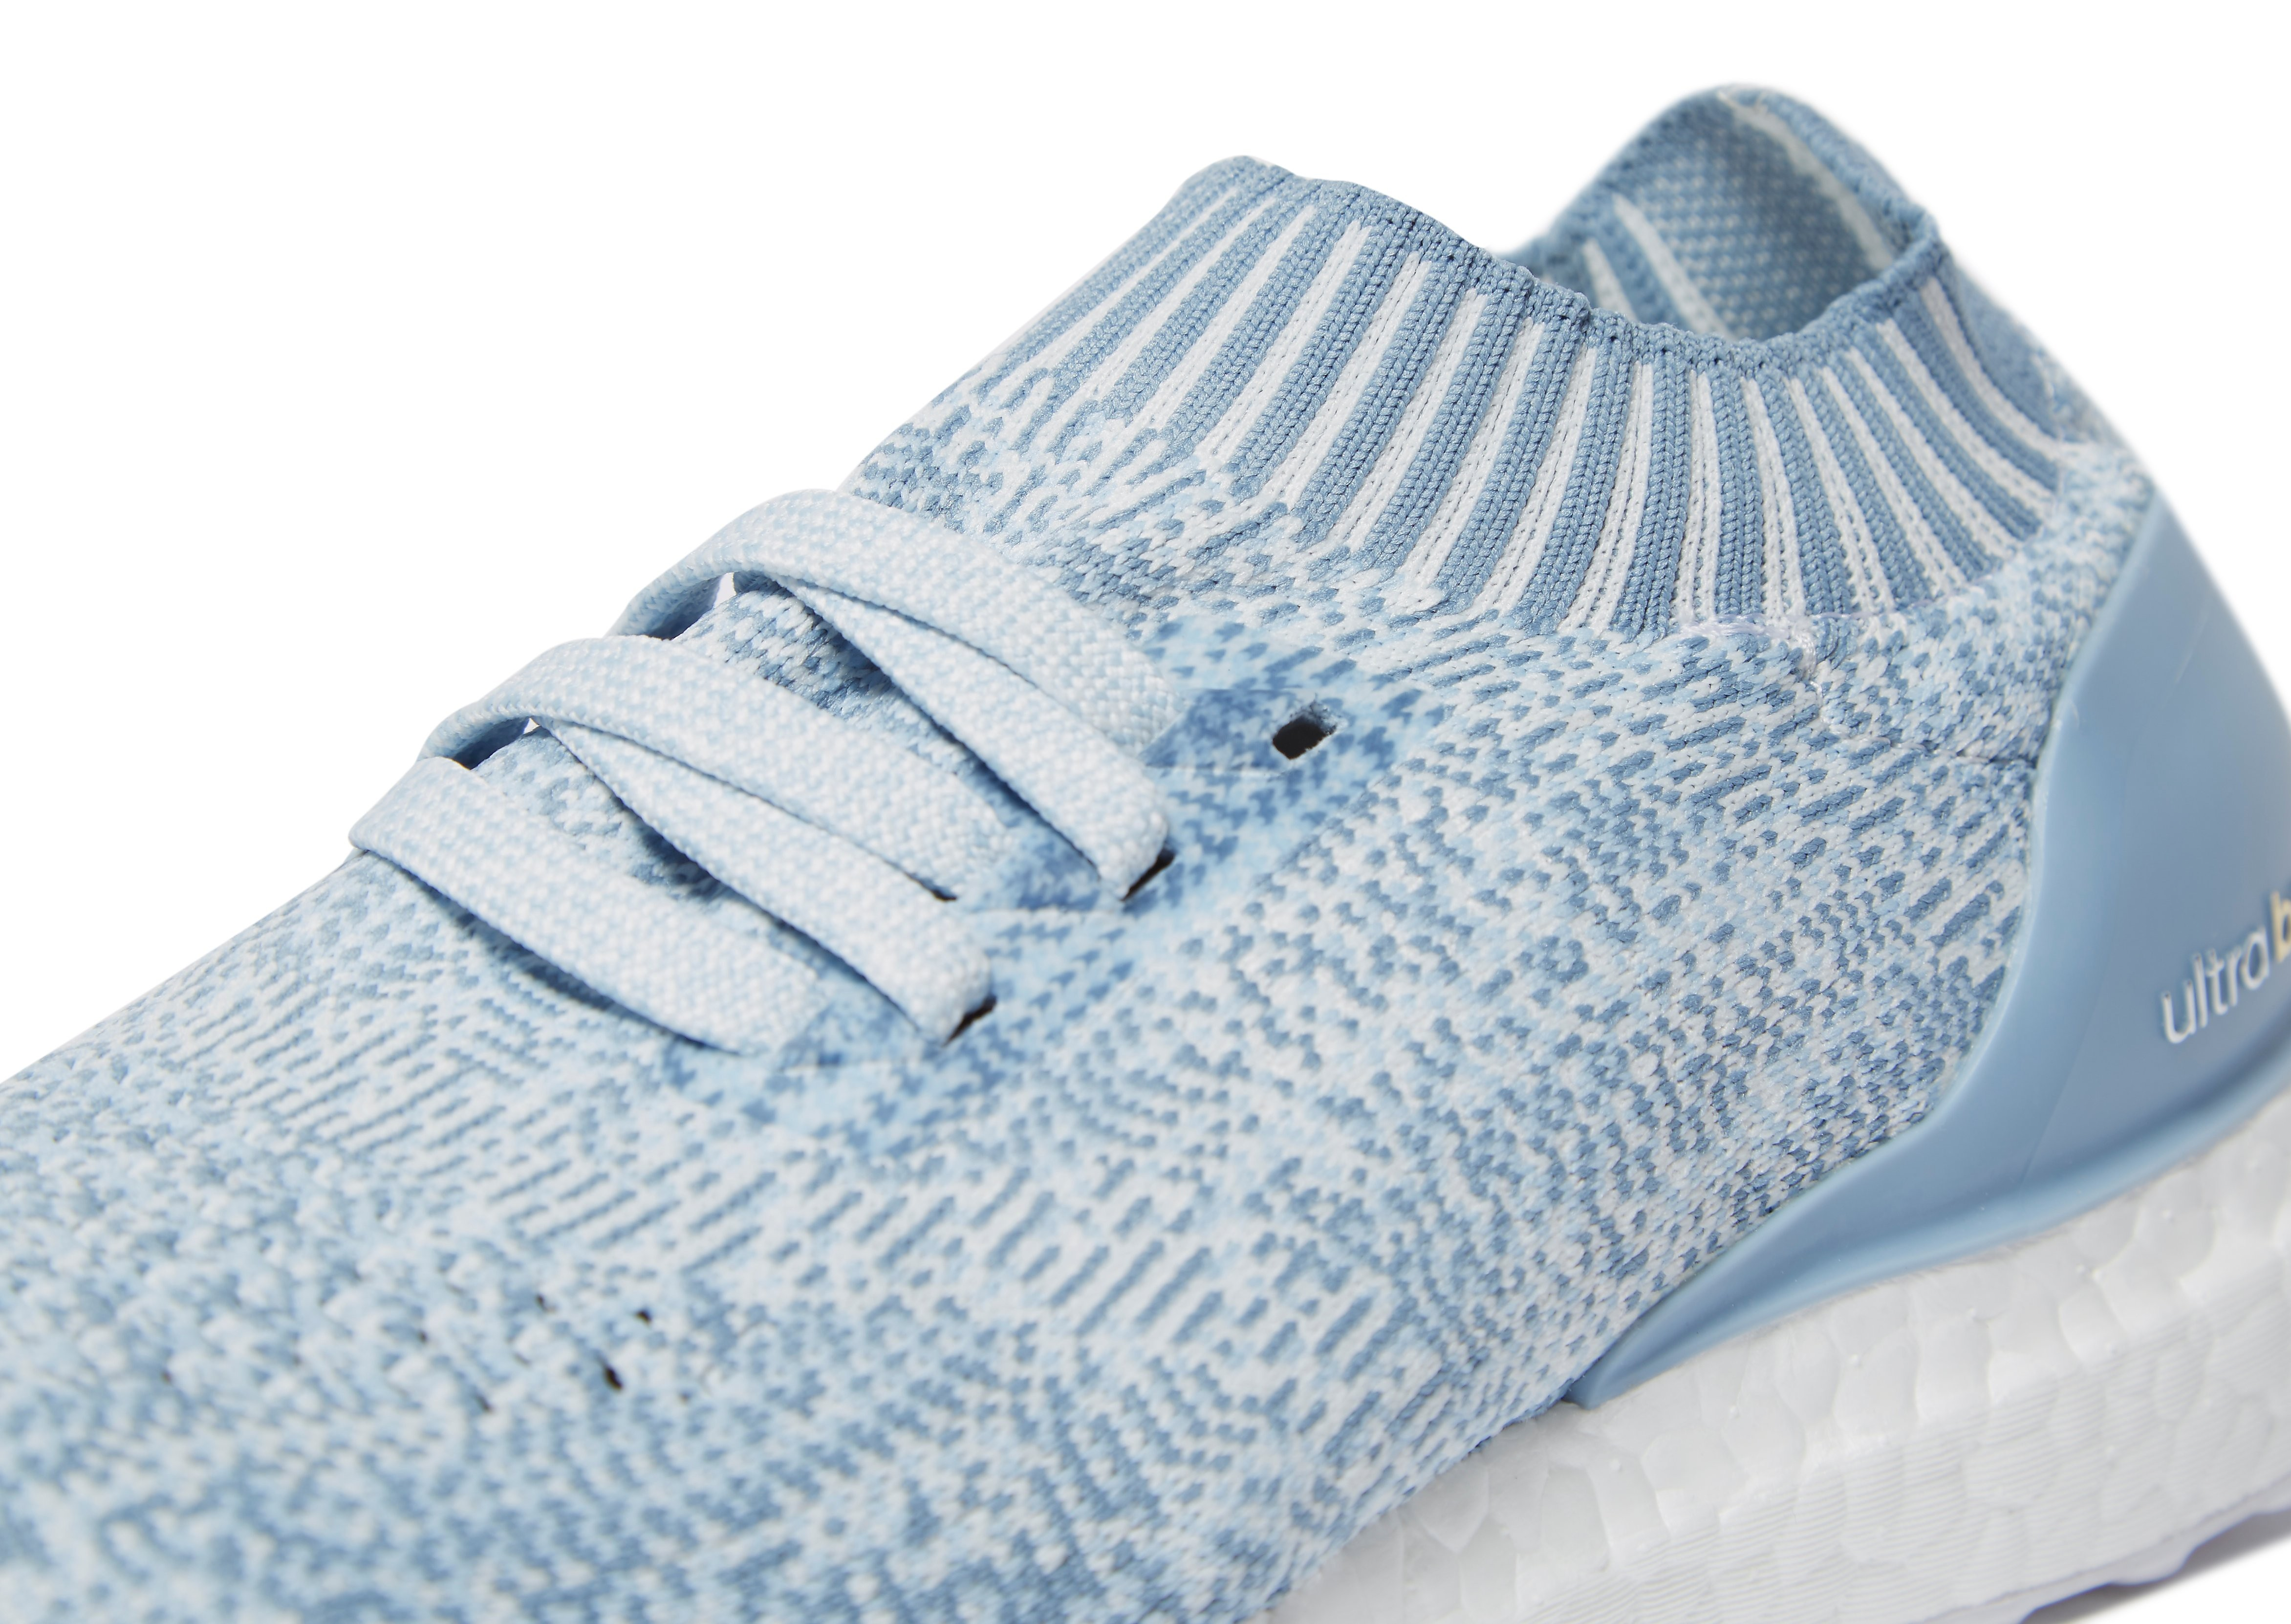 adidas Boost Uncaged Women's